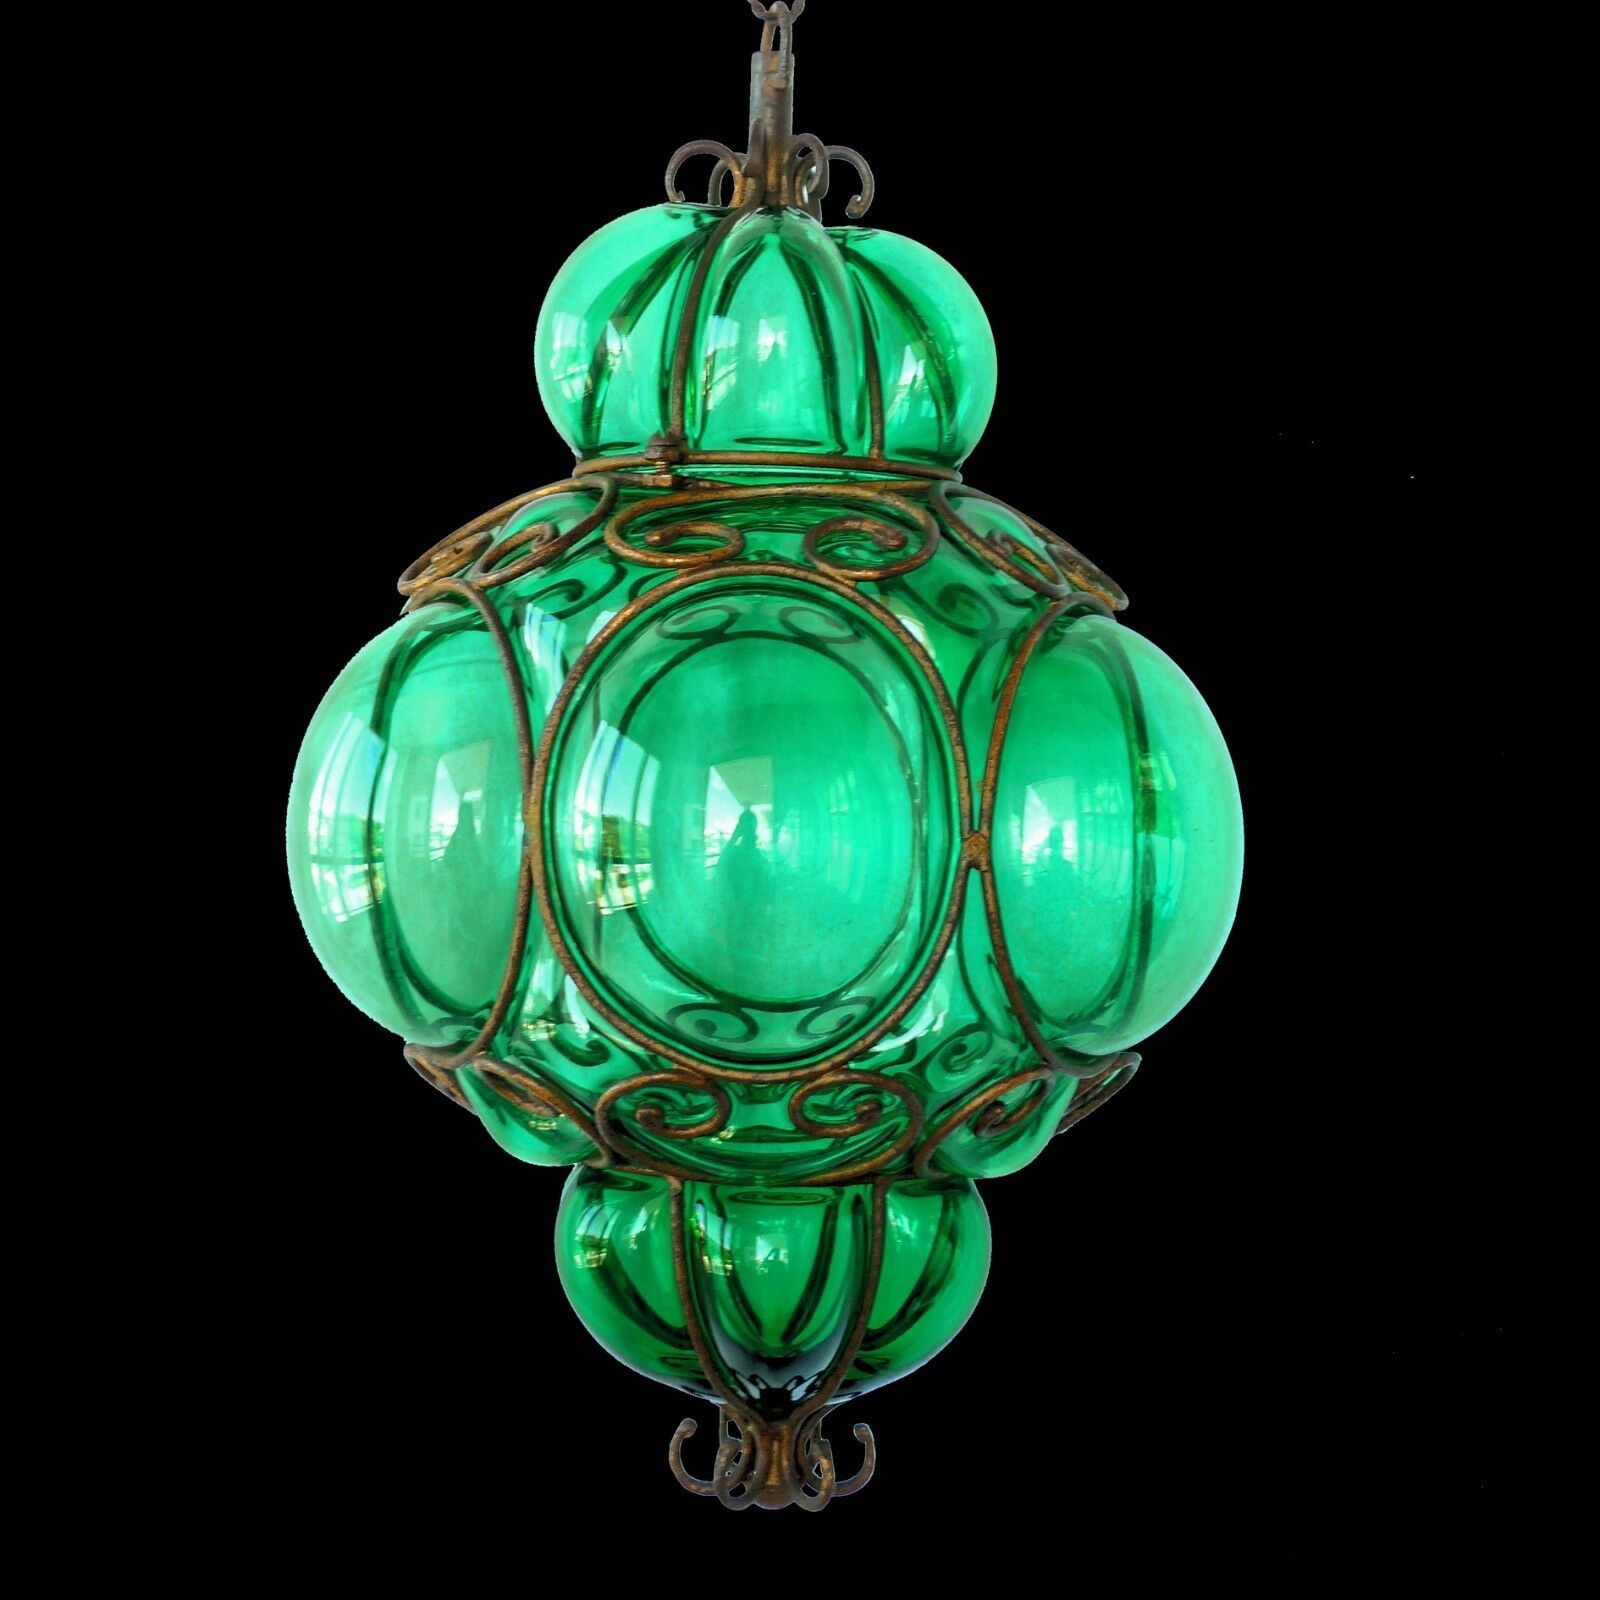 Vtg Murano Caged Glass Green Ceiling Pendant Light/Midcentury Hanging Lamp/Italy